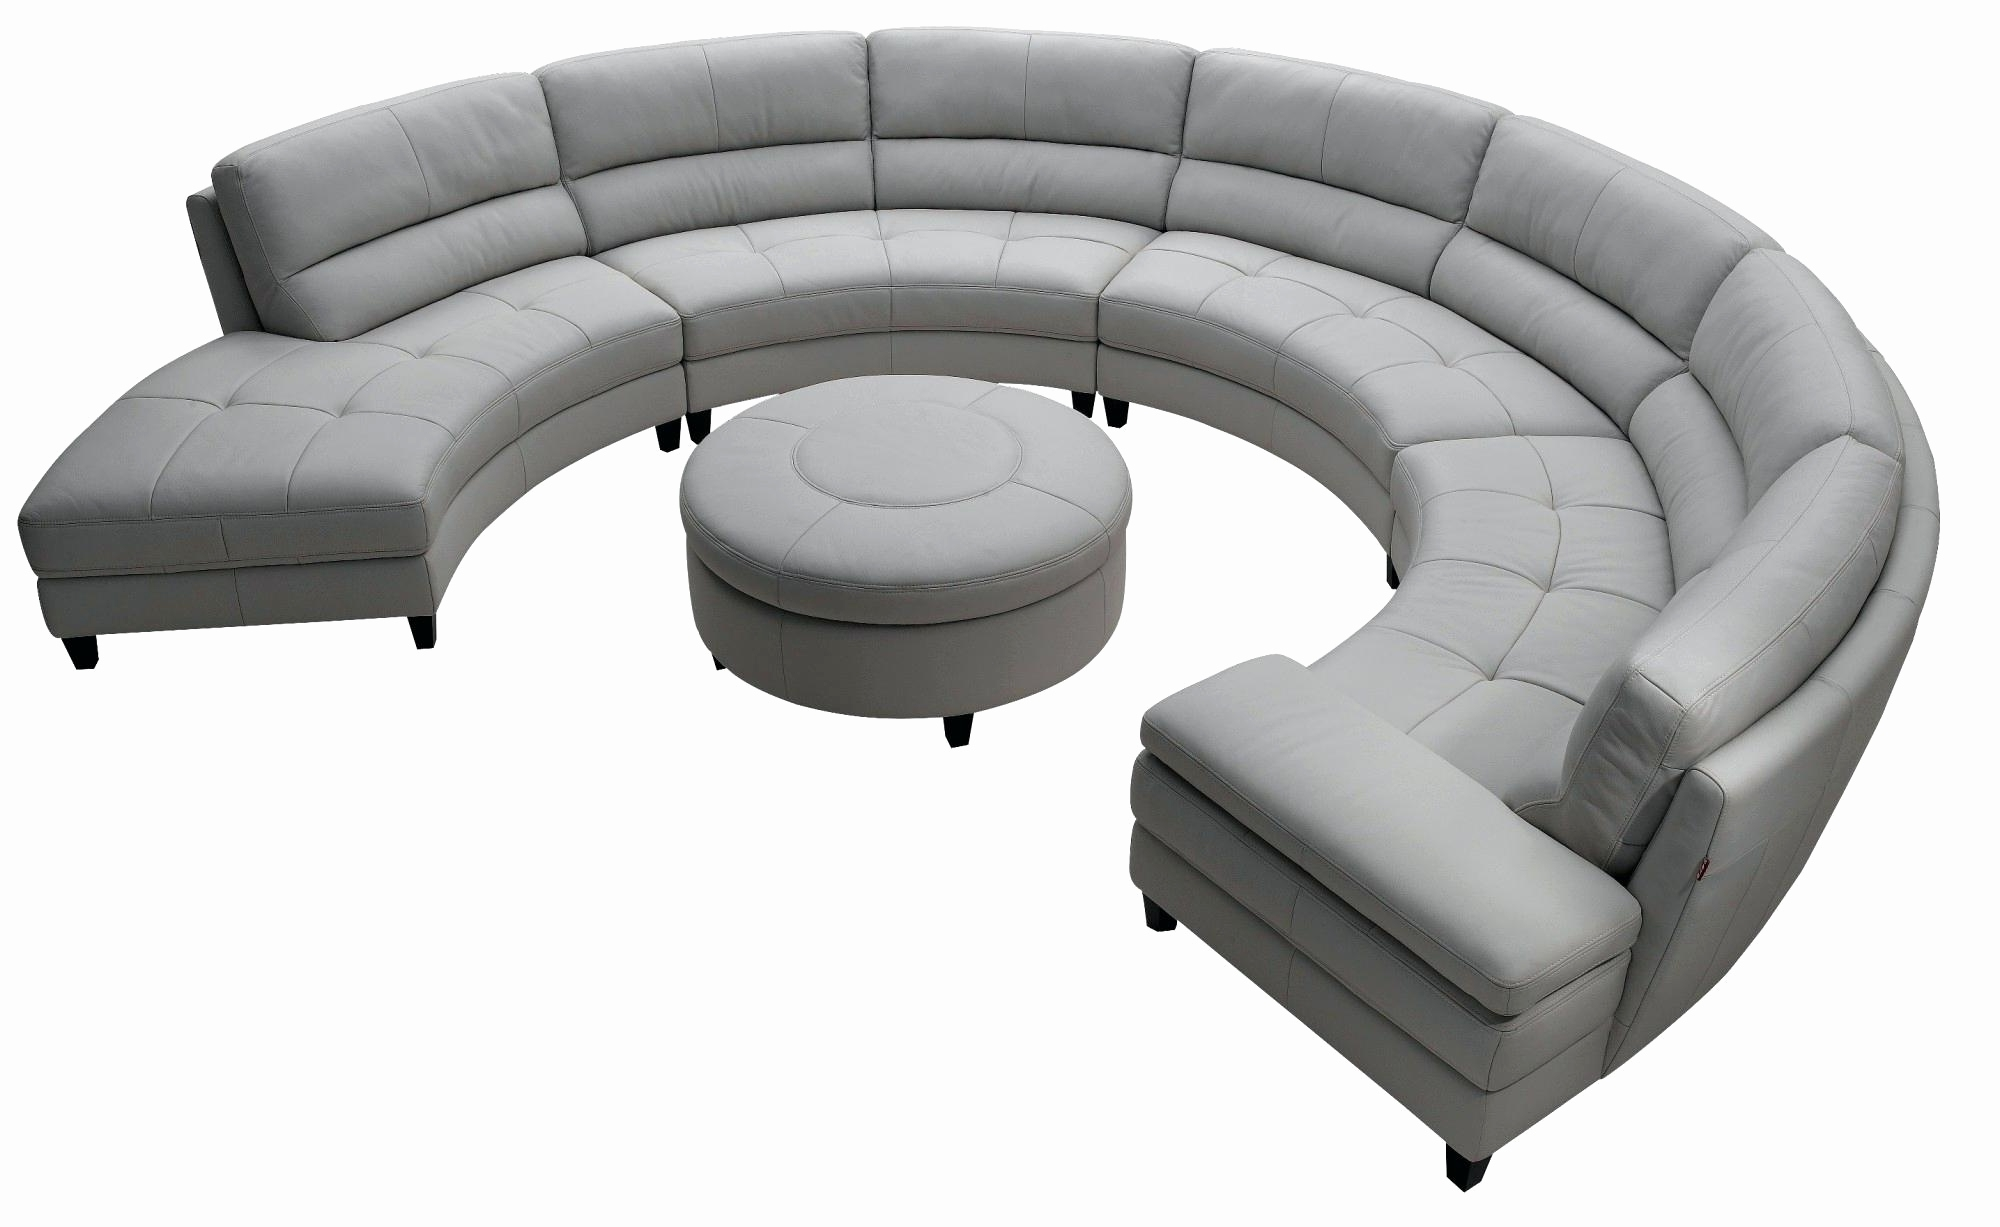 Best Round Couches For Sale 2018 – Couches And Sofas Ideas Regarding Popular Round Sofas (View 16 of 20)